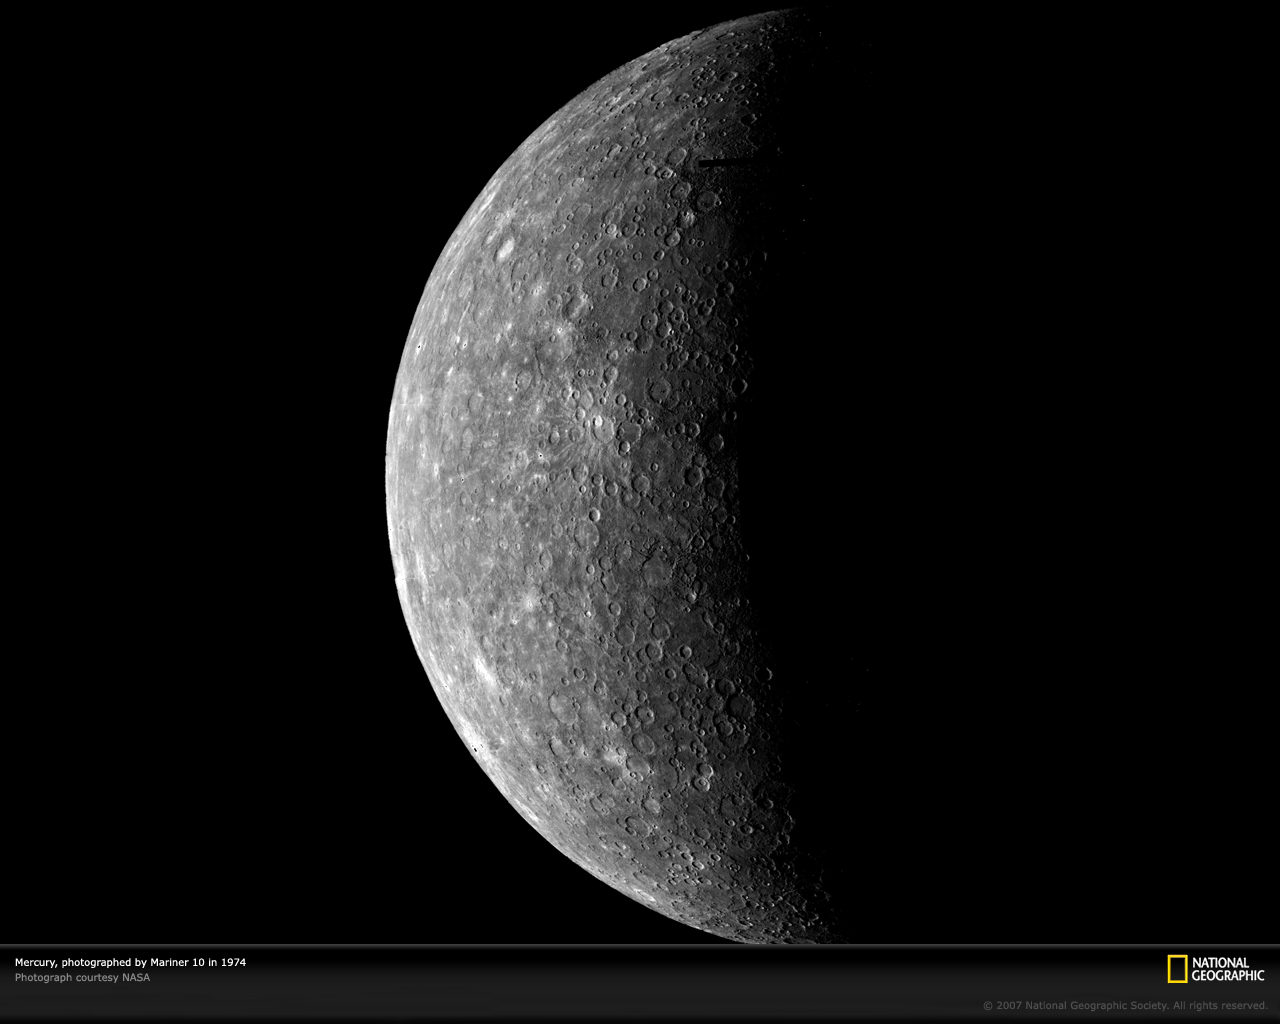 This photo is from Photo Gallery: Mercury